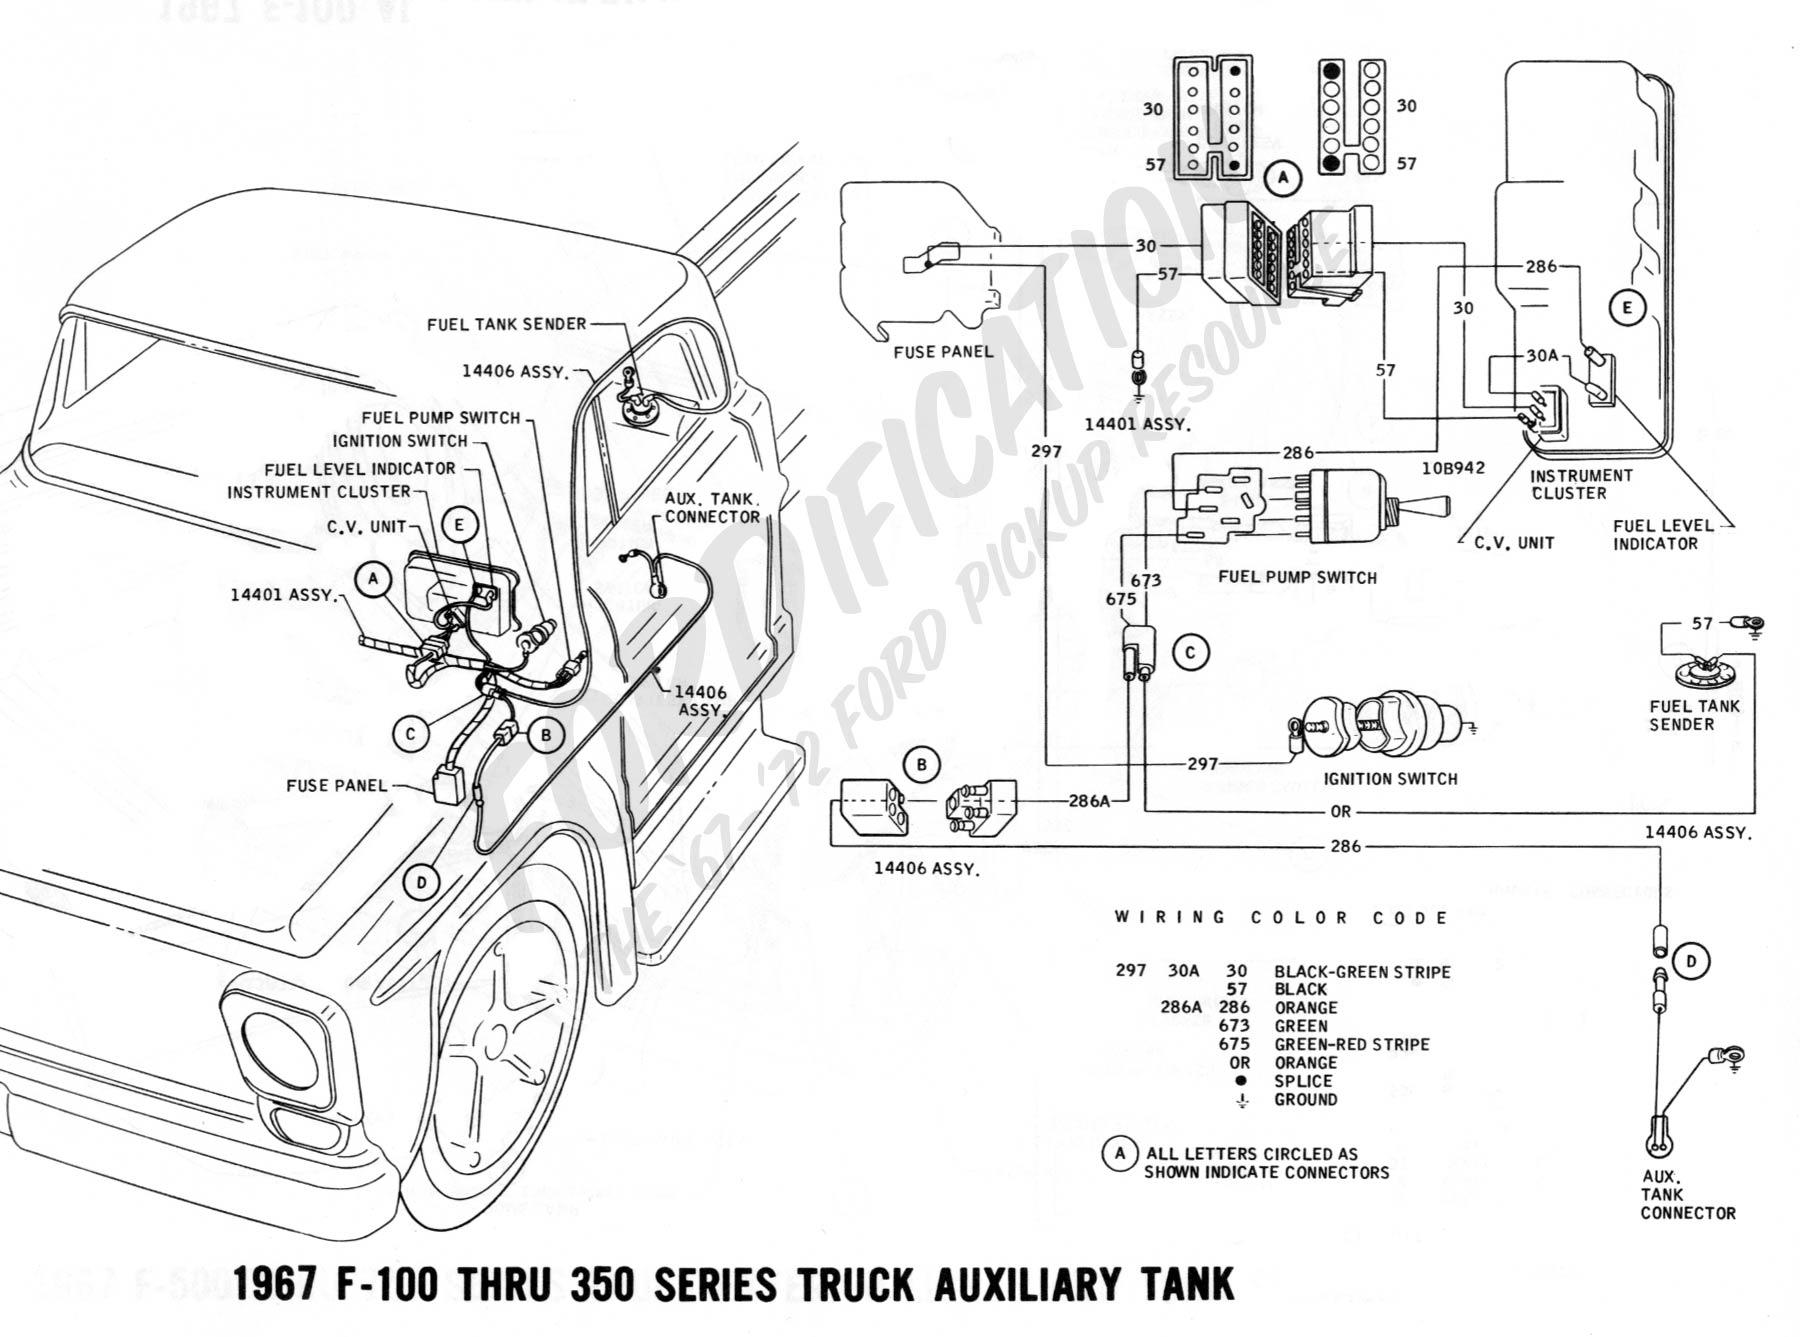 wiring 1967auxtank ford truck technical drawings and schematics section h wiring F150 Wiring Schematic at honlapkeszites.co